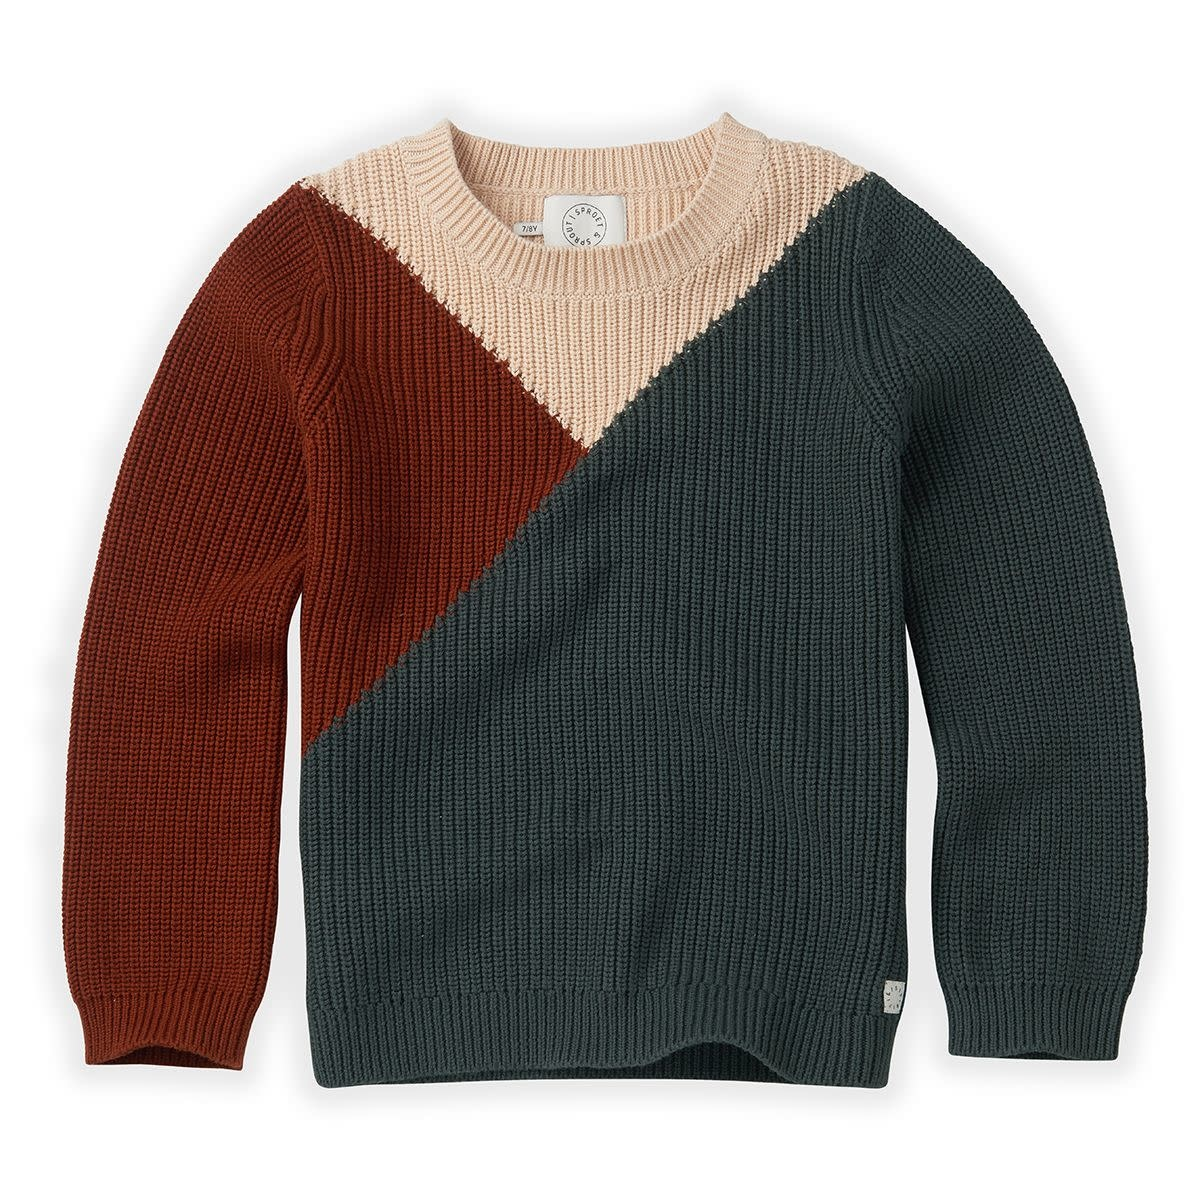 Sproet & Sprout Sproet&Sprout - Sweater colourblock dusty green